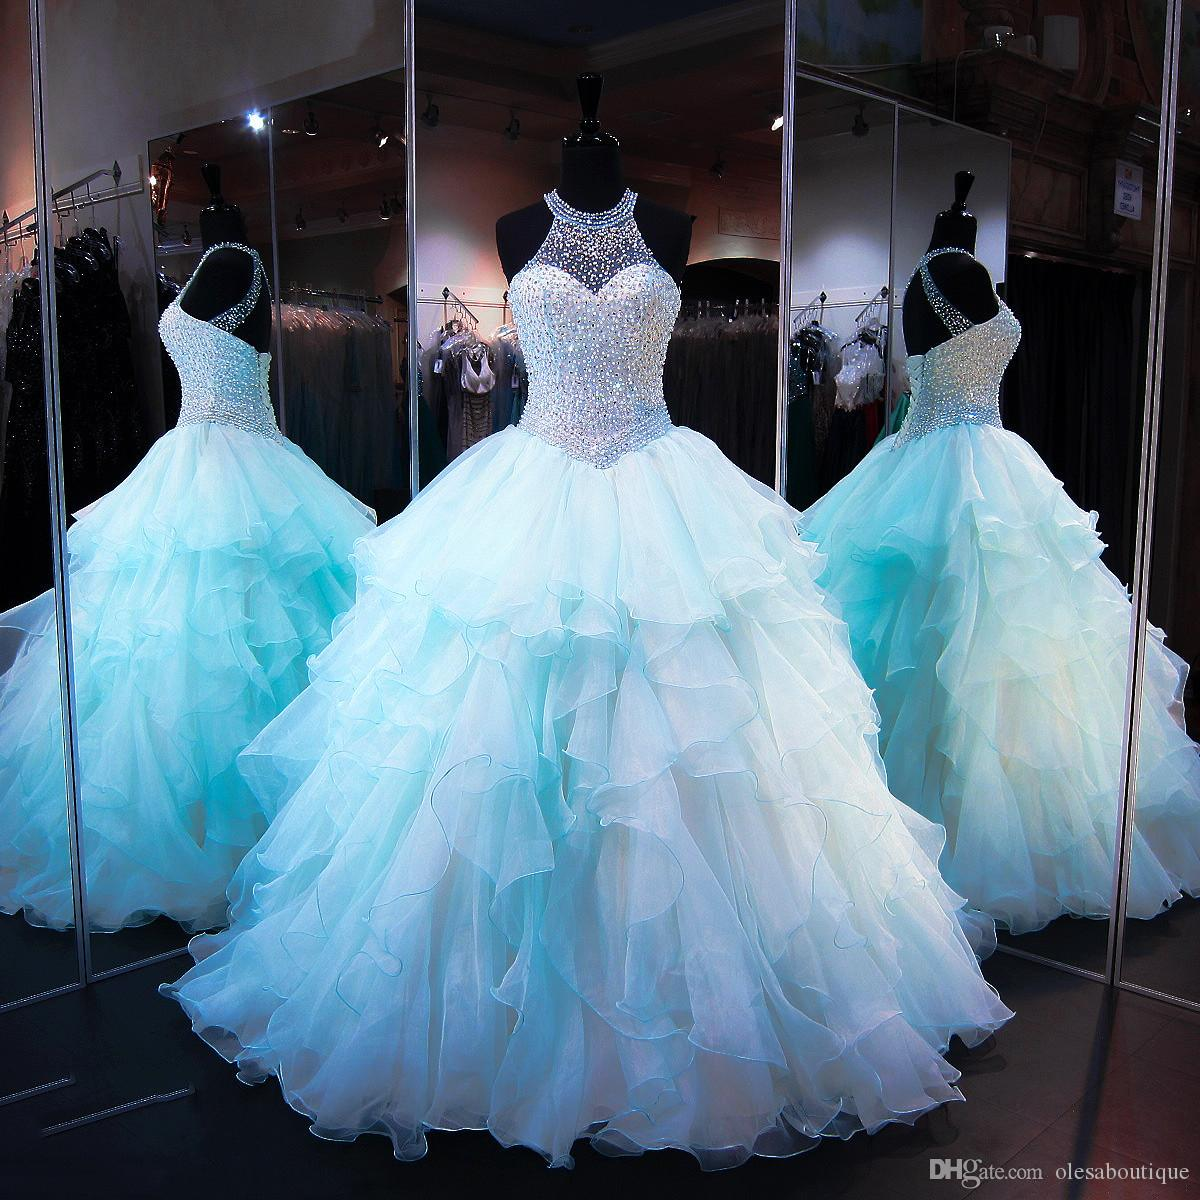 Ruffled Organza Skirt With Pearl Beaded Bodice Quinceanera Dress ...